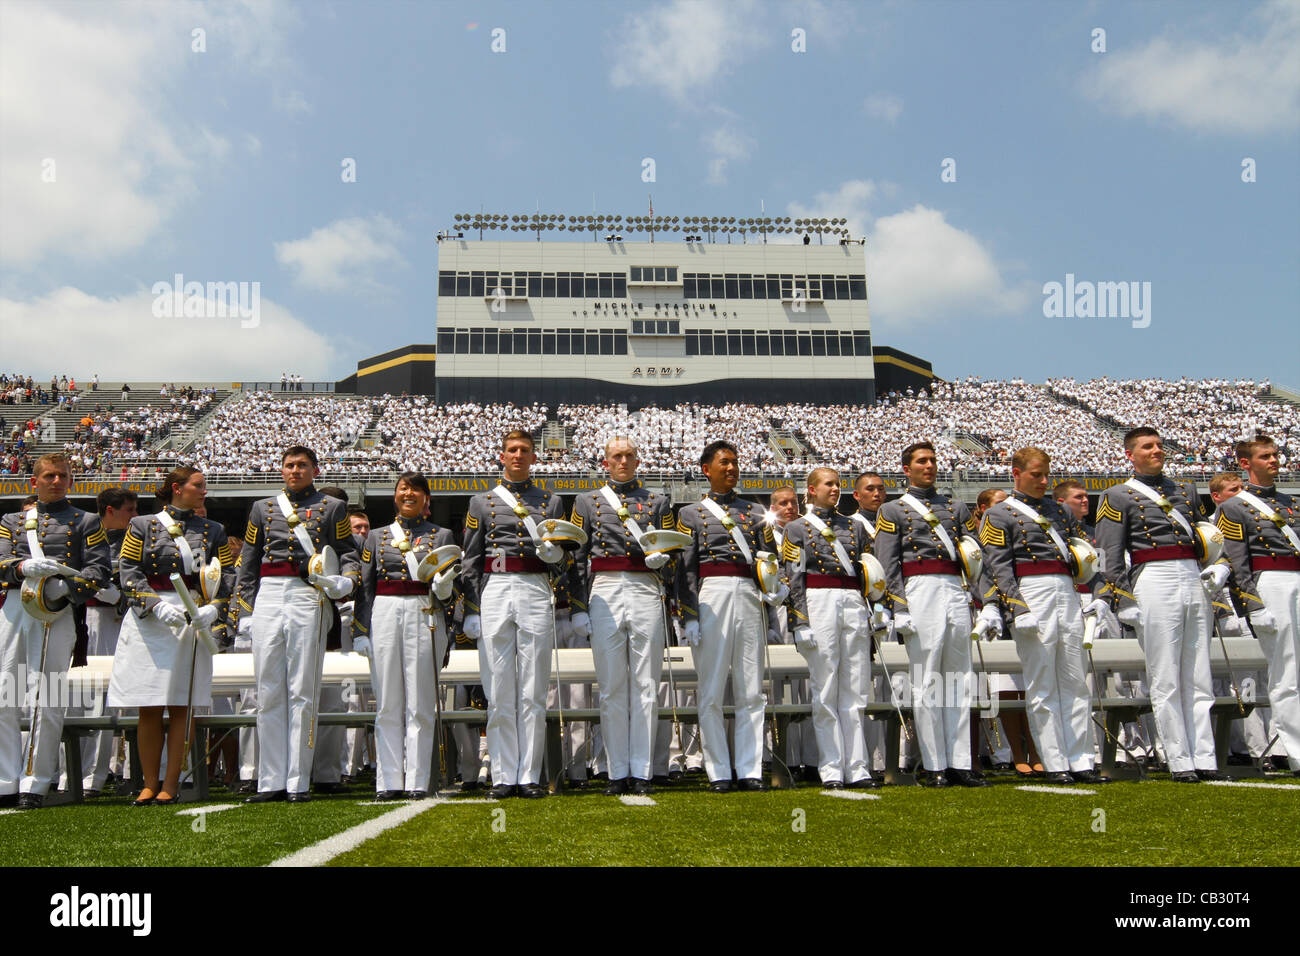 Graduating cadets from the US Military Academy class of 2012 stand at attention during ceremonies May 26, 2012 in - Stock Image